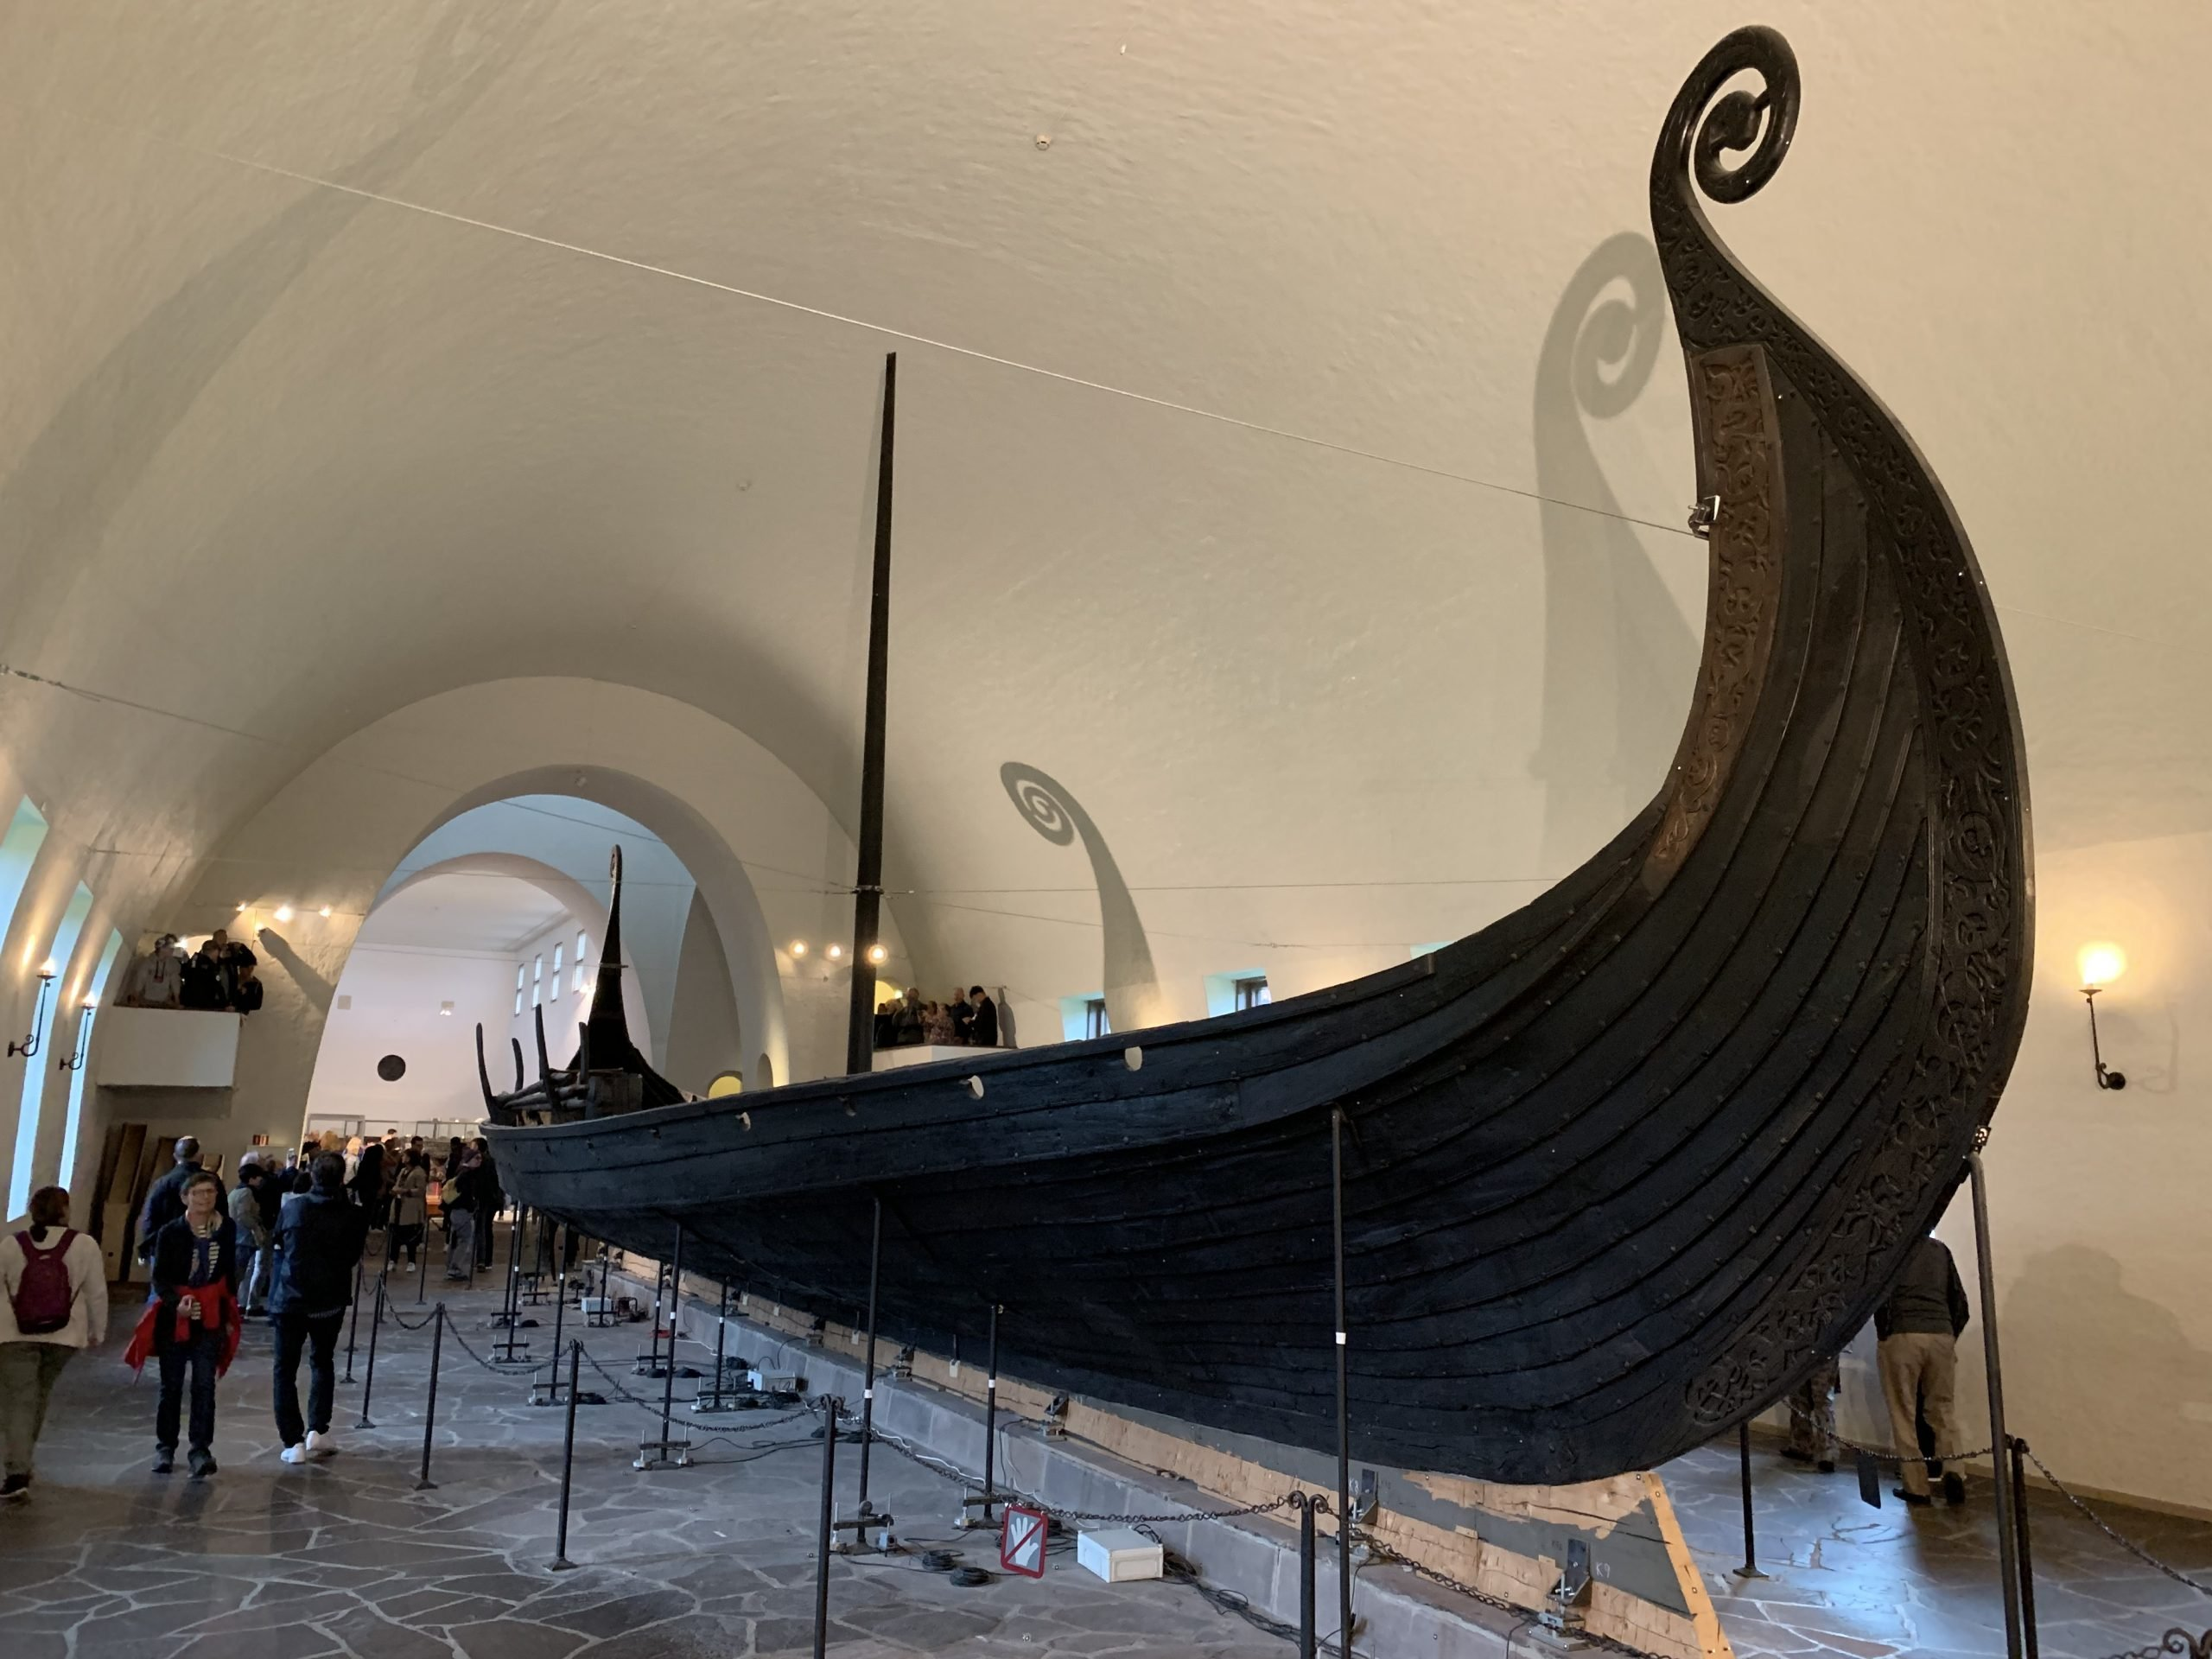 The Oseberg Burial Ship in the Viking Ship Museum, Oslo, Norway.